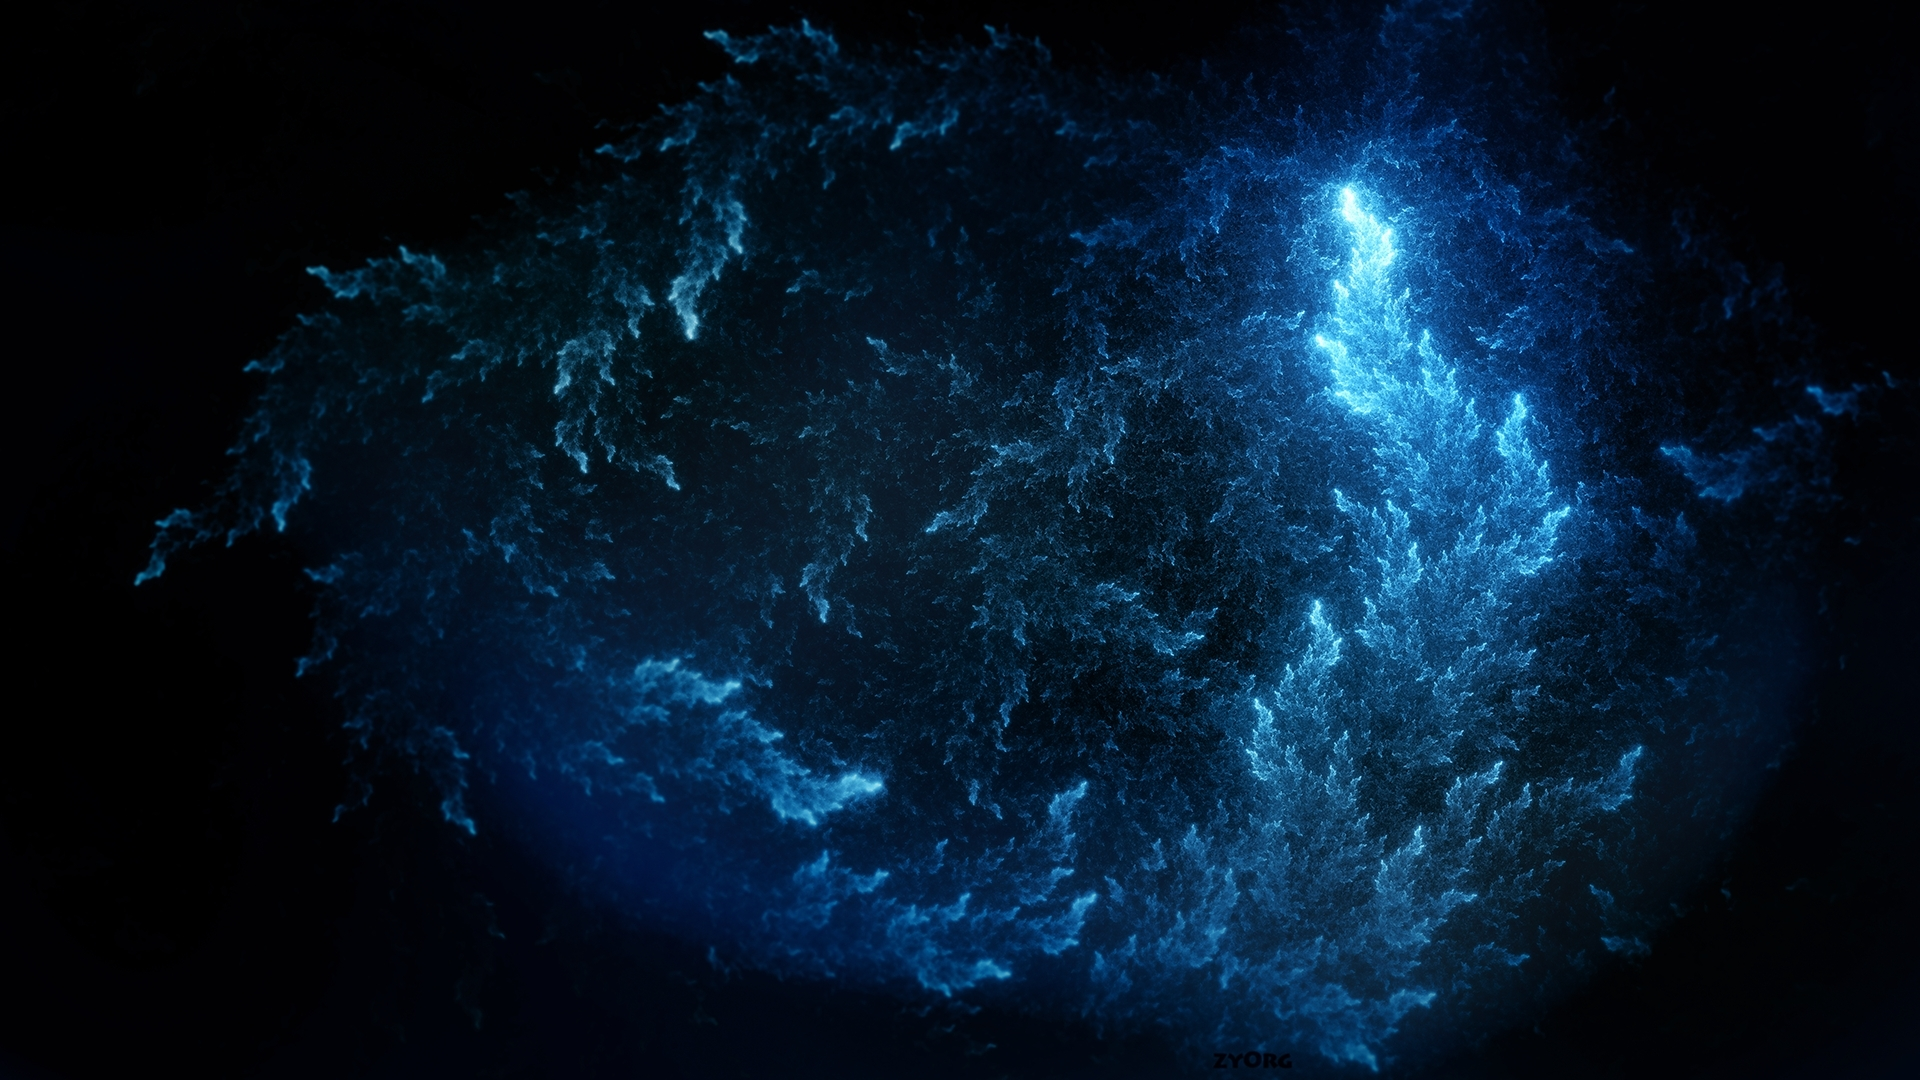 1920x1080 Lovely Blue Abstract Desktop PC And Mac Wallpaper